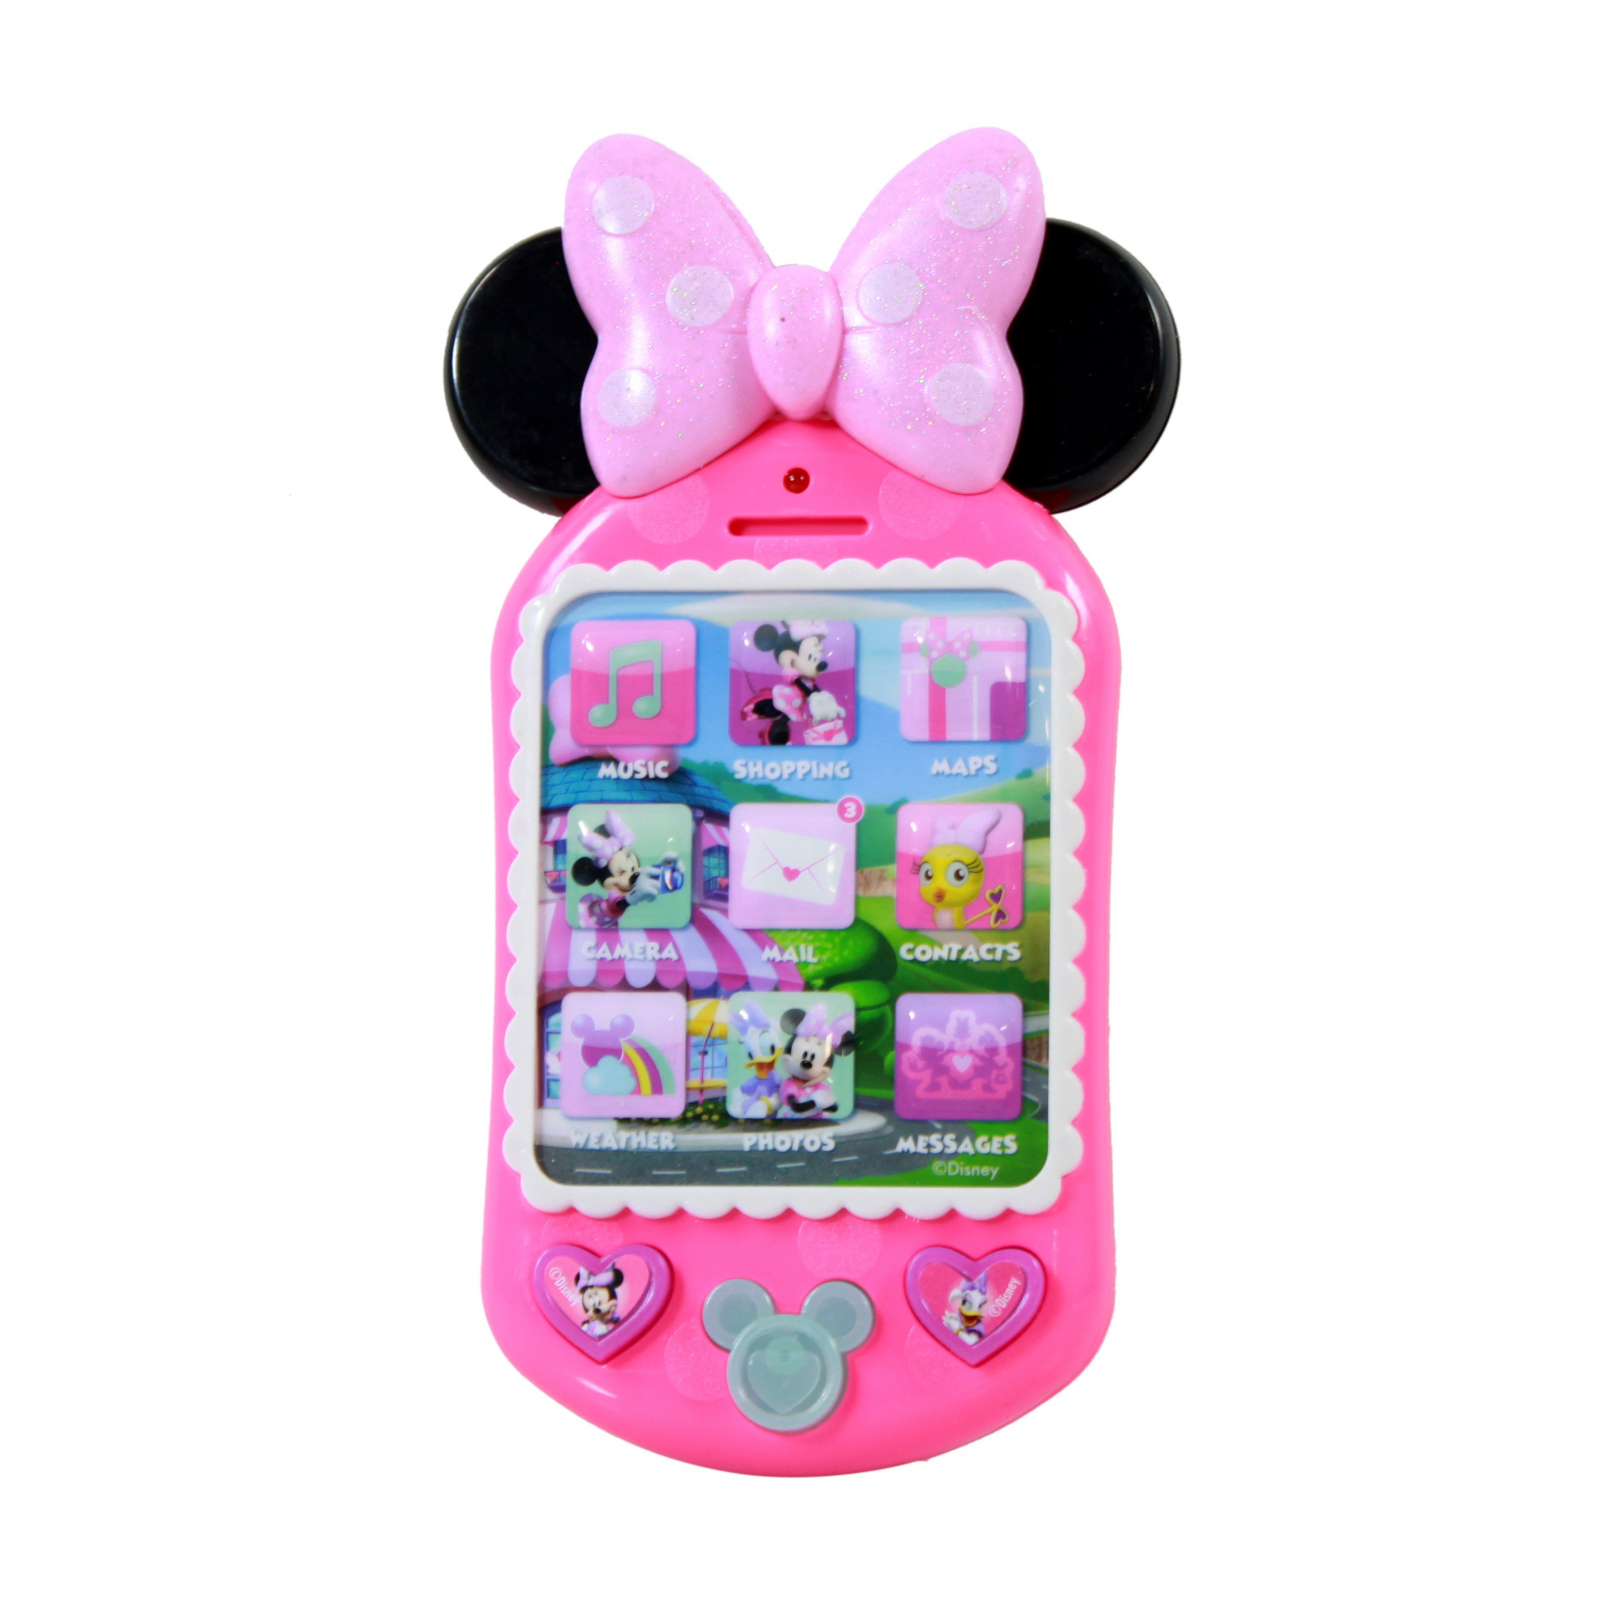 Disney Junior Minnie Mouse Why Hello! Pretend Cell Phone